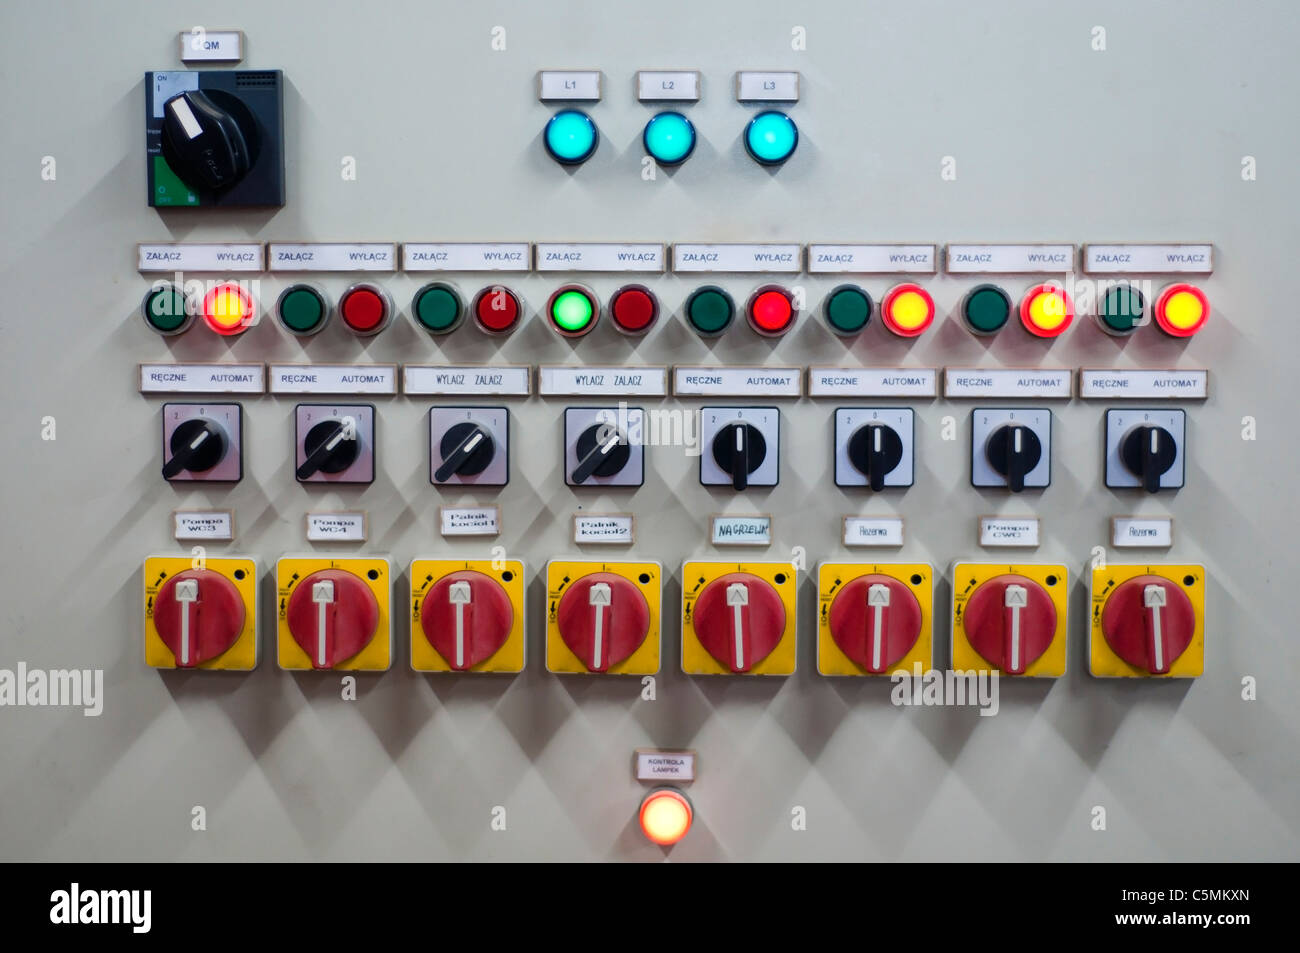 many buttons, and switches, control panel Stock Photo: 37948701 - Alamy